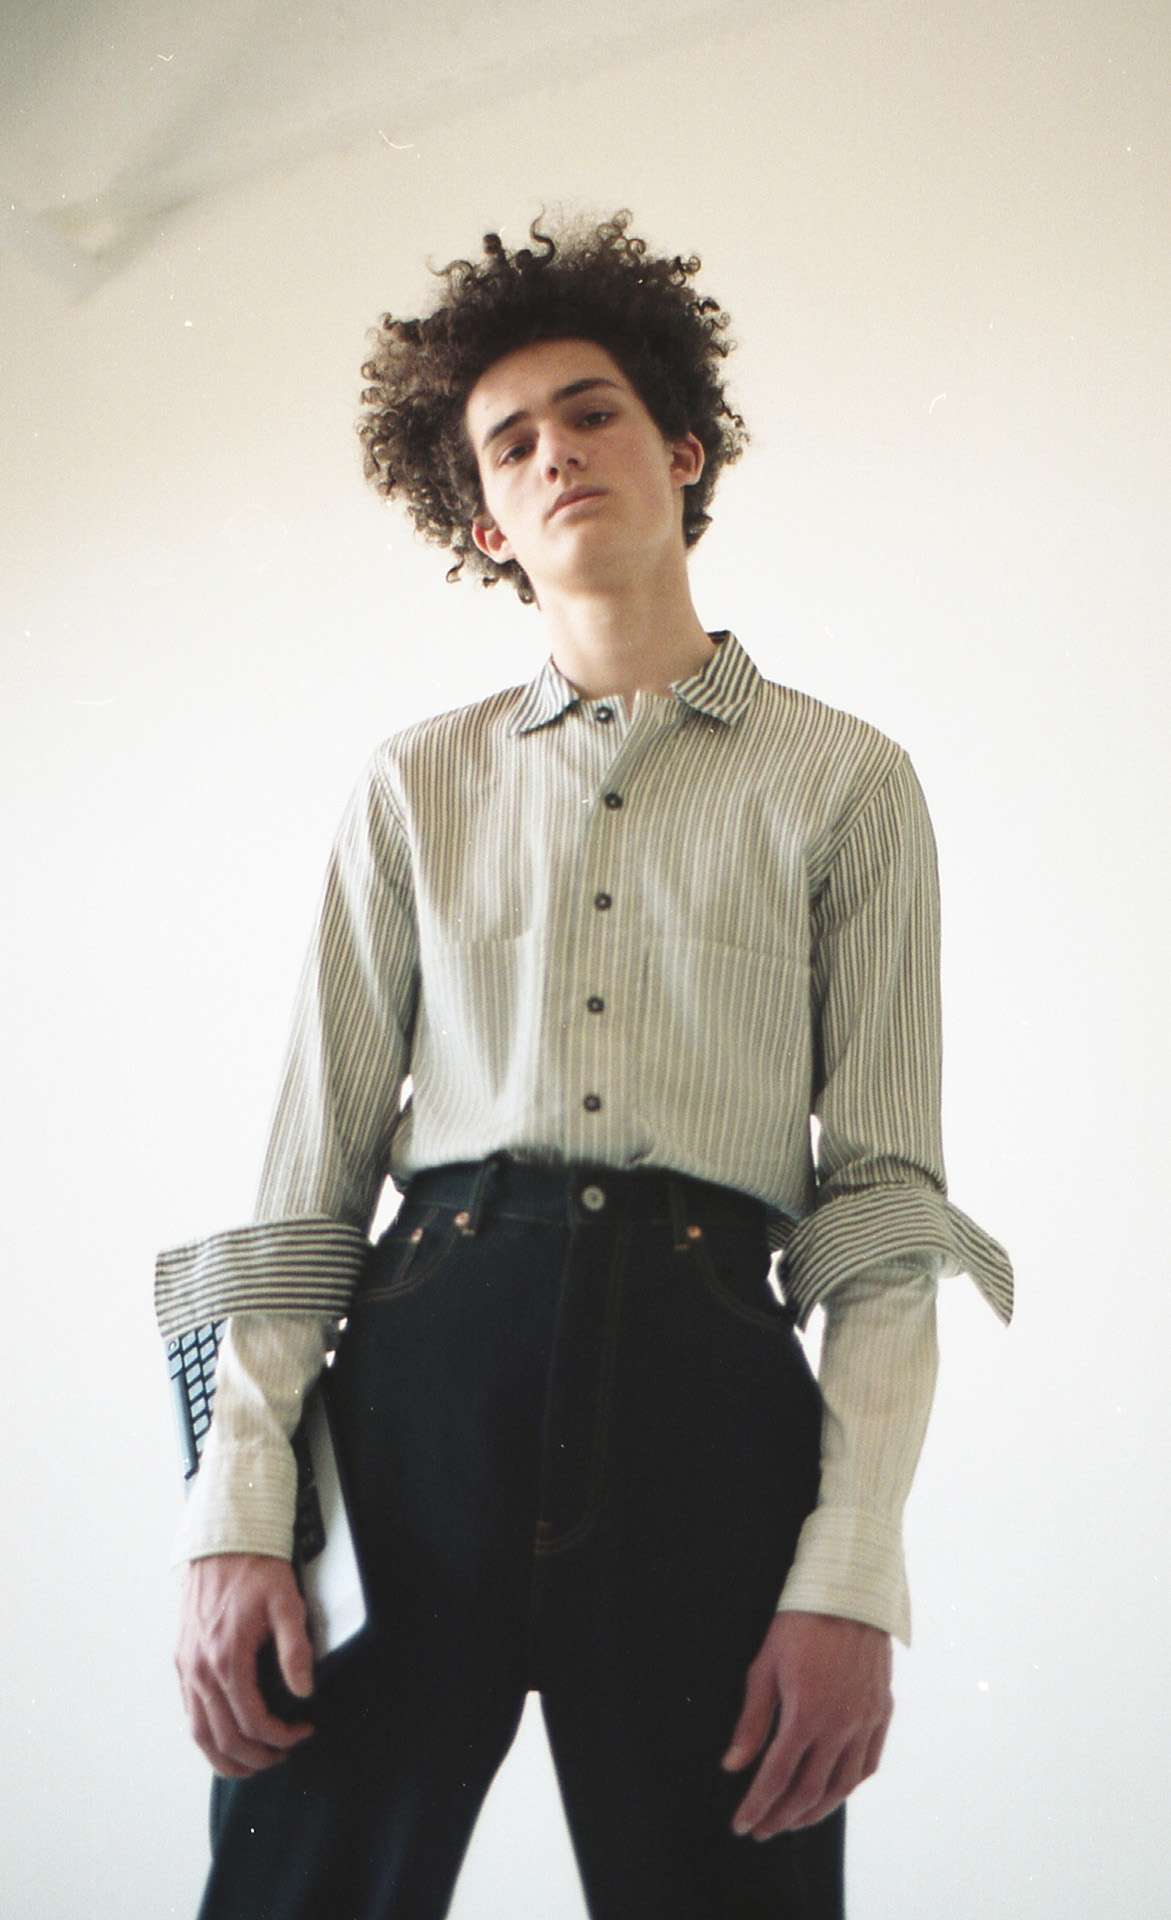 curly haired male model wearing black pants and striped shirt looking at camera for Collector's Cut by Hyperbureau with styling and artistic direction by Studio TB